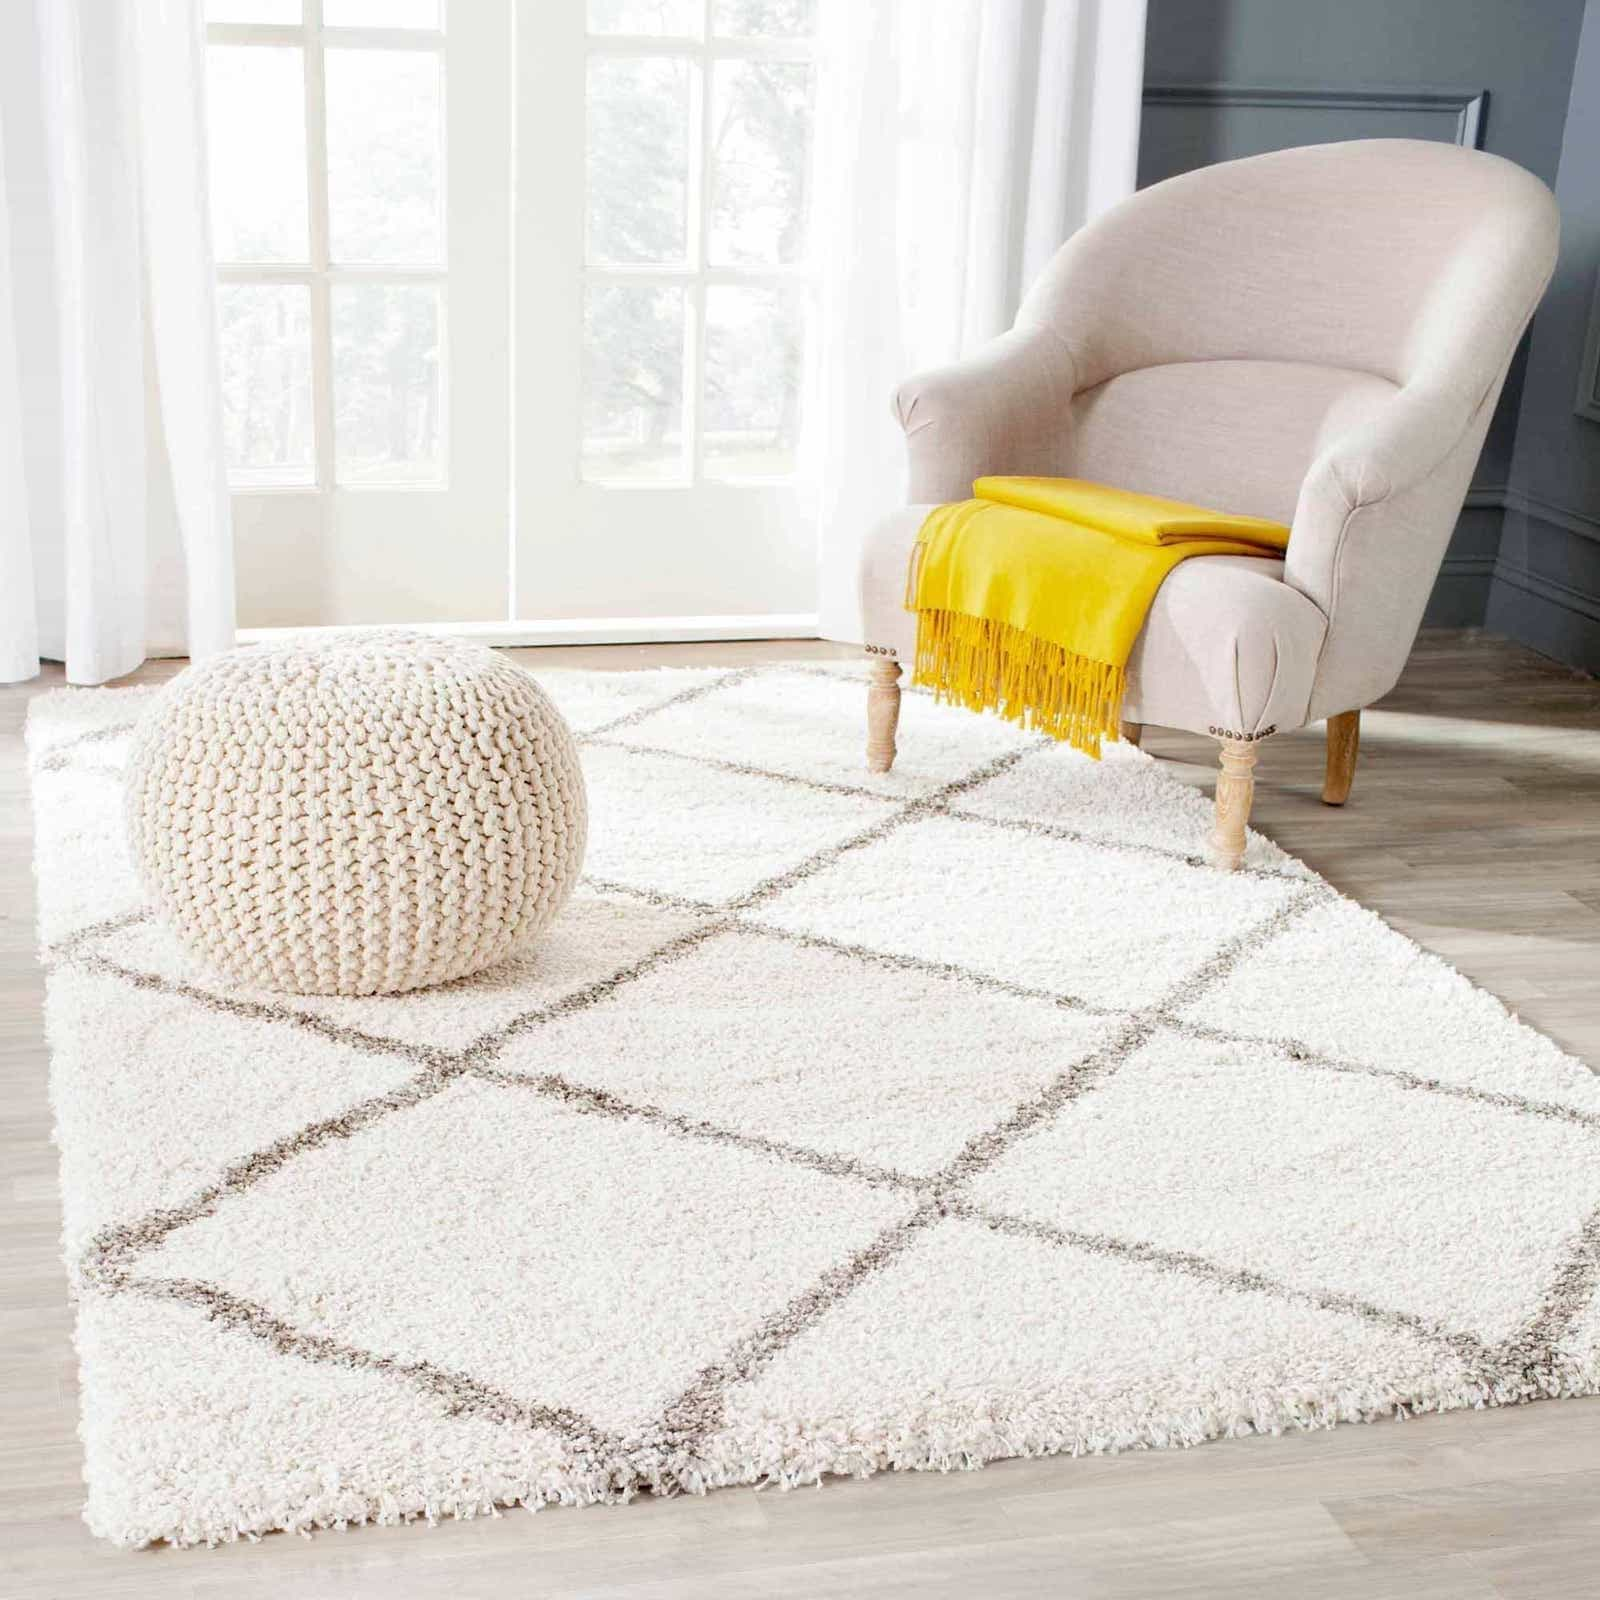 Featured Image of 15 Best Shag Rugs Decor Ideas